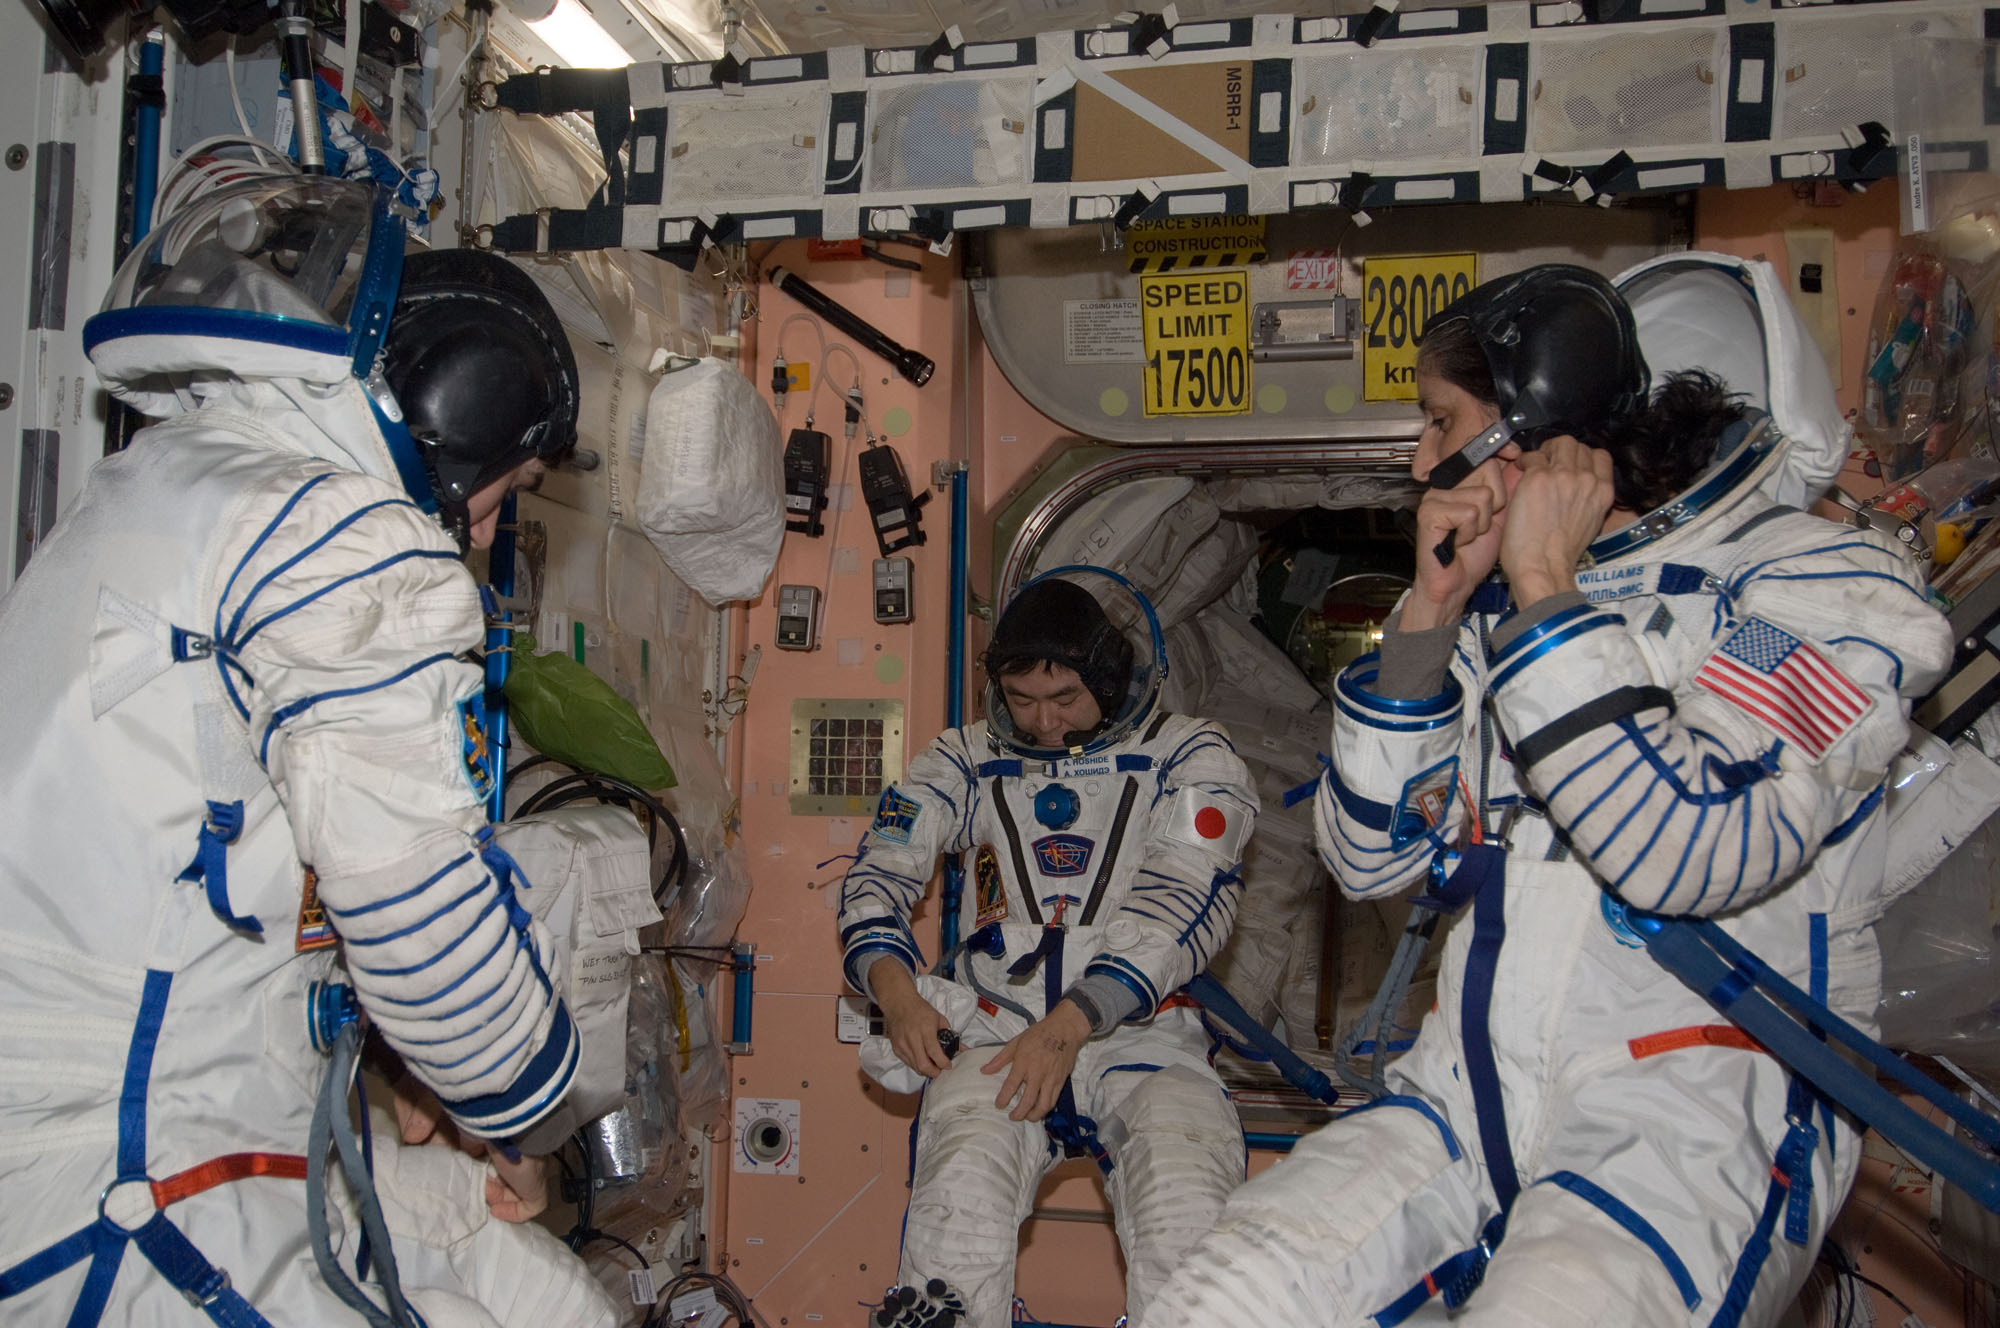 Expedition 33 Landing: All Suited Up